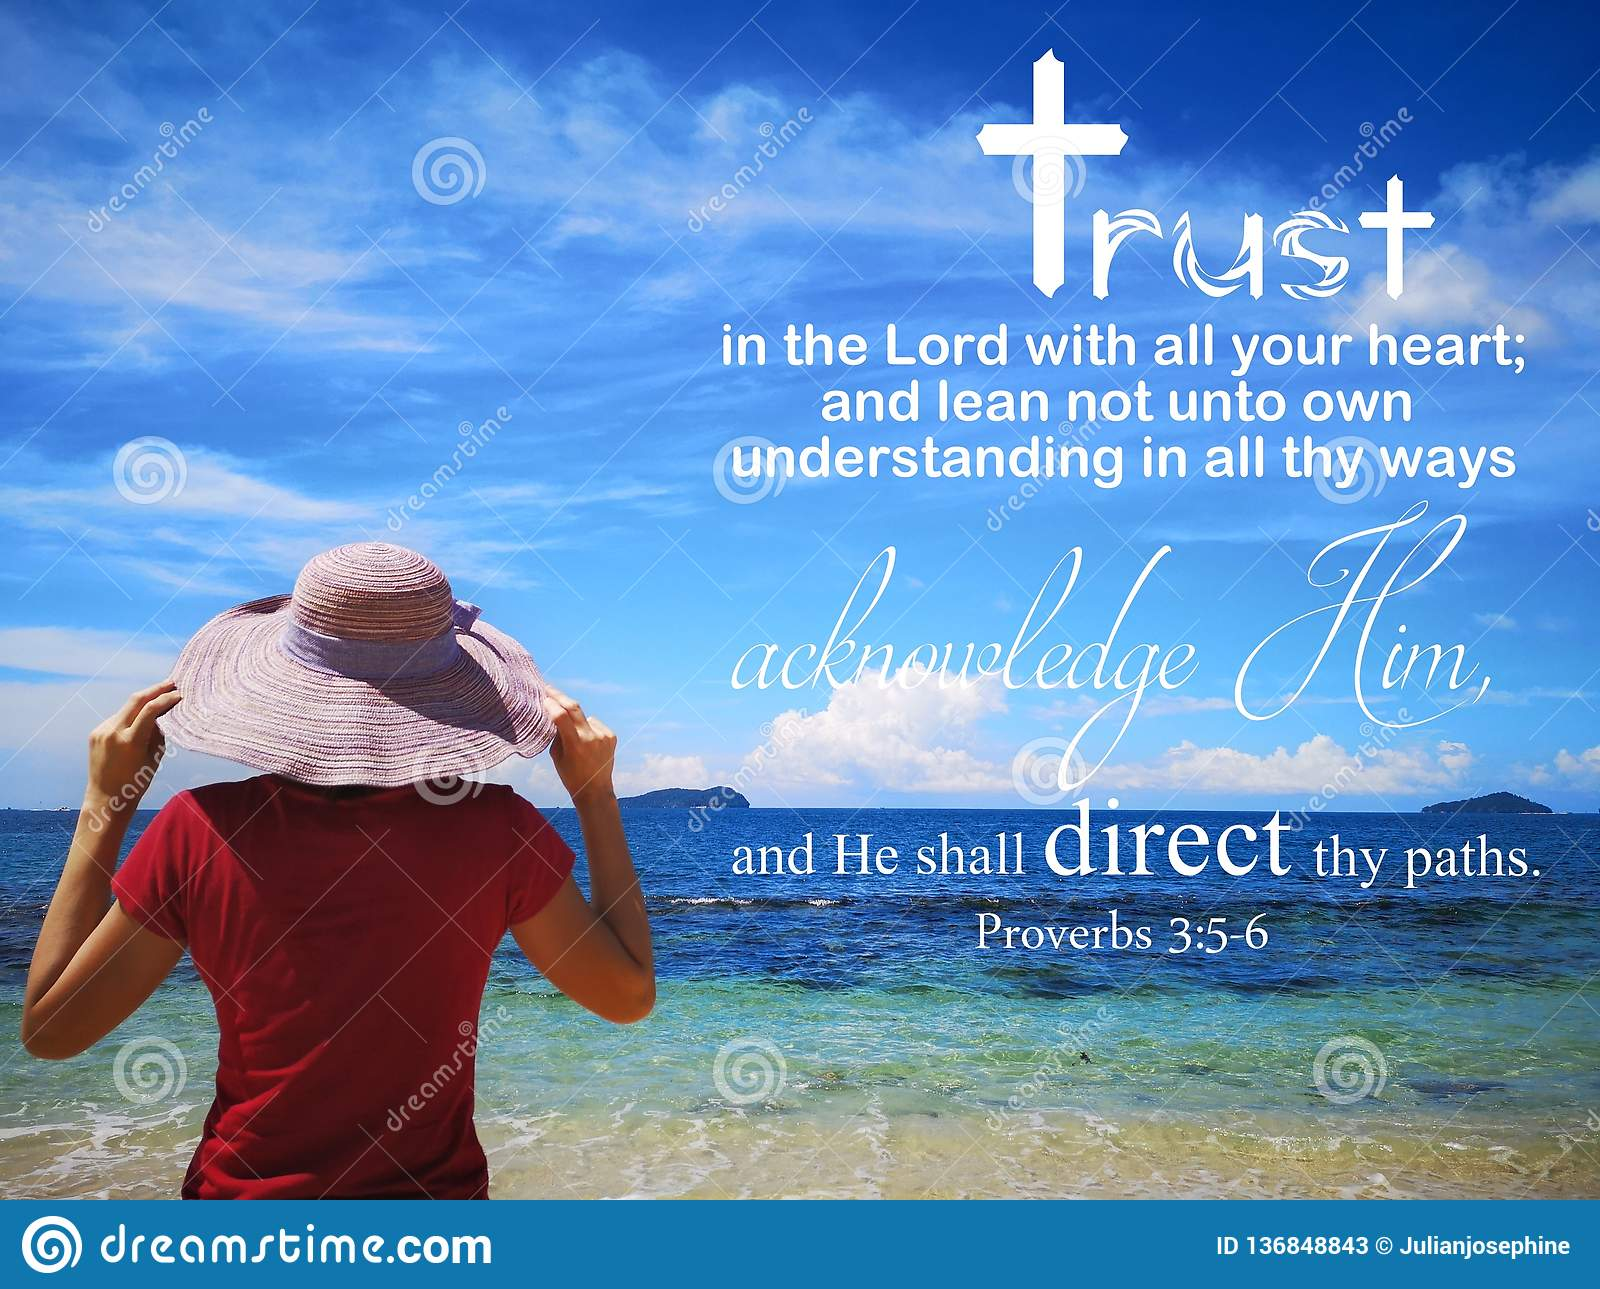 Trust In God With Background Ocean View And A Lady Look Up To The